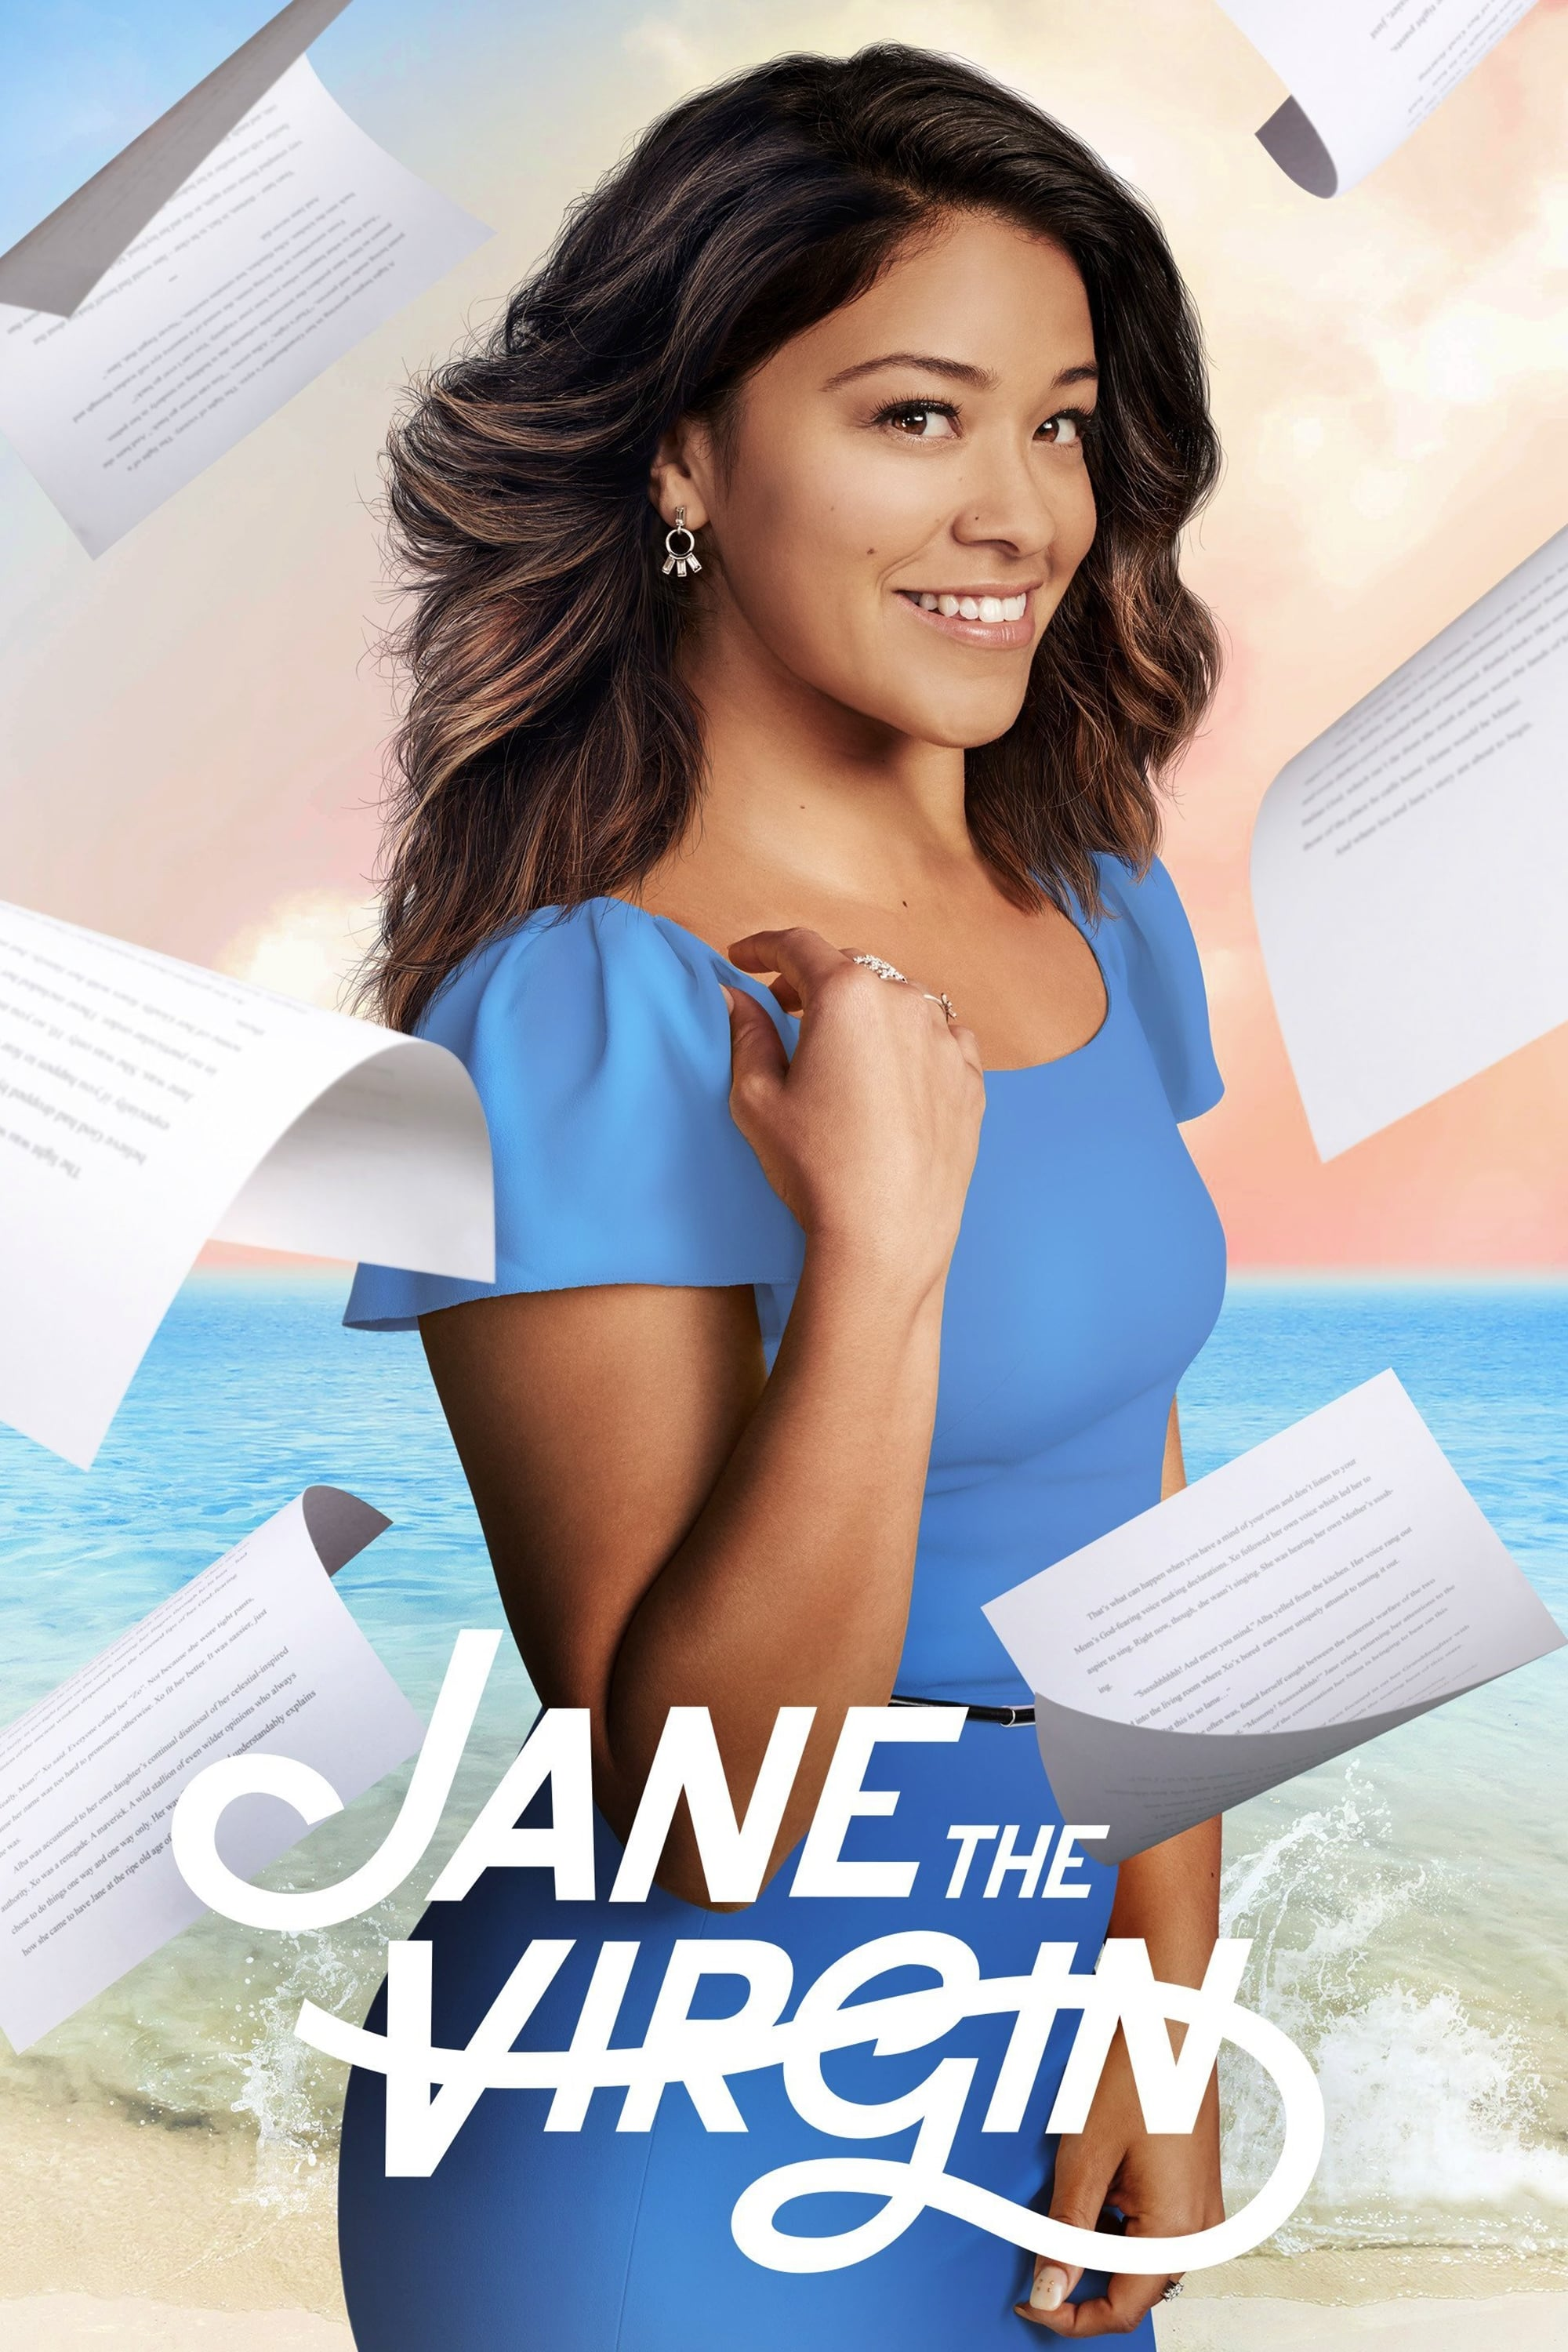 jane the virgin kinox